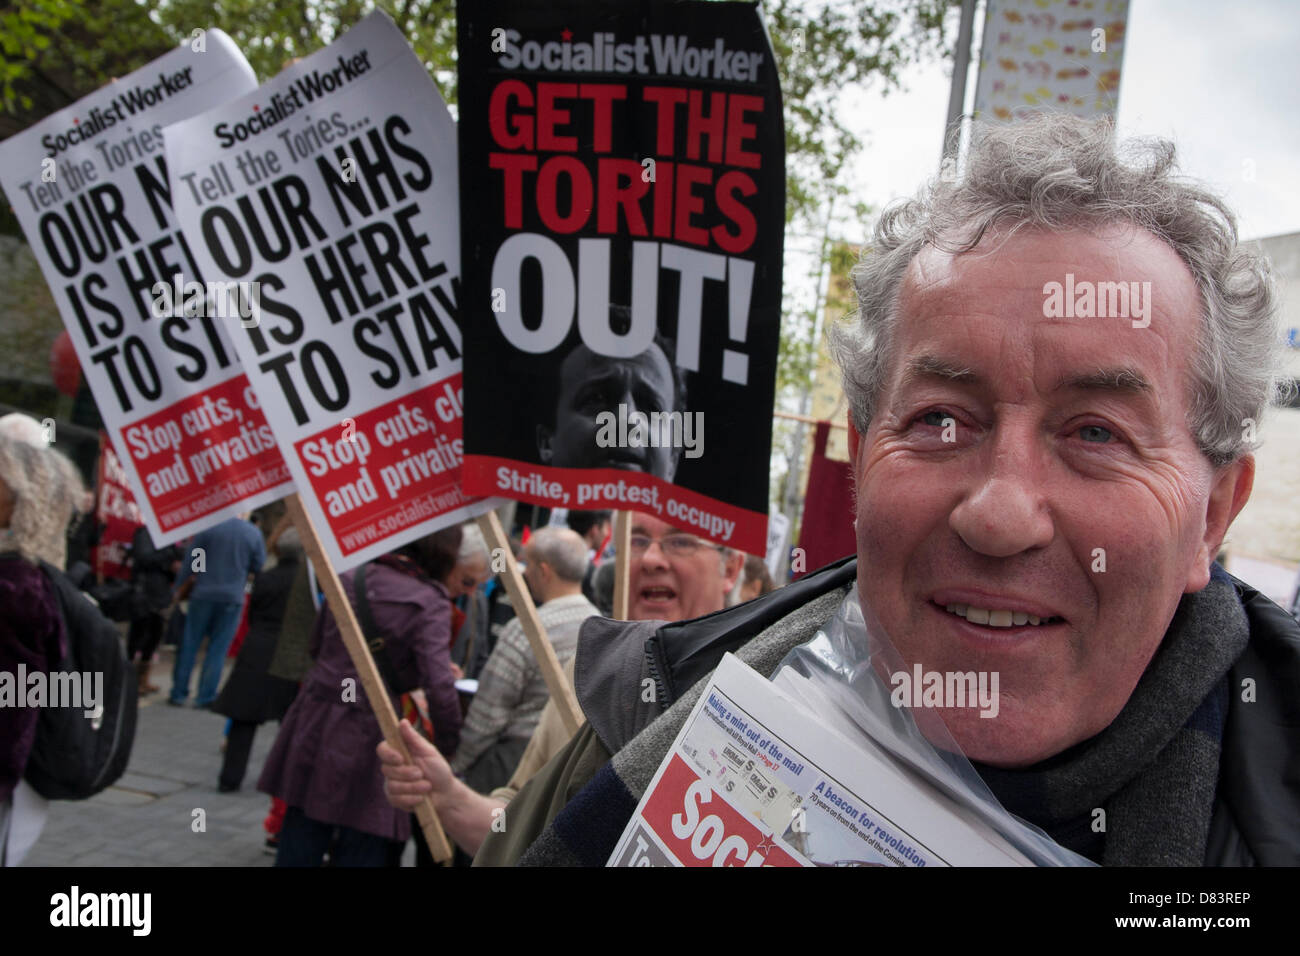 London, UK. 18th May 2013. London. A protester waits for the march against NHS cuts and privatisation of essential - Stock Image